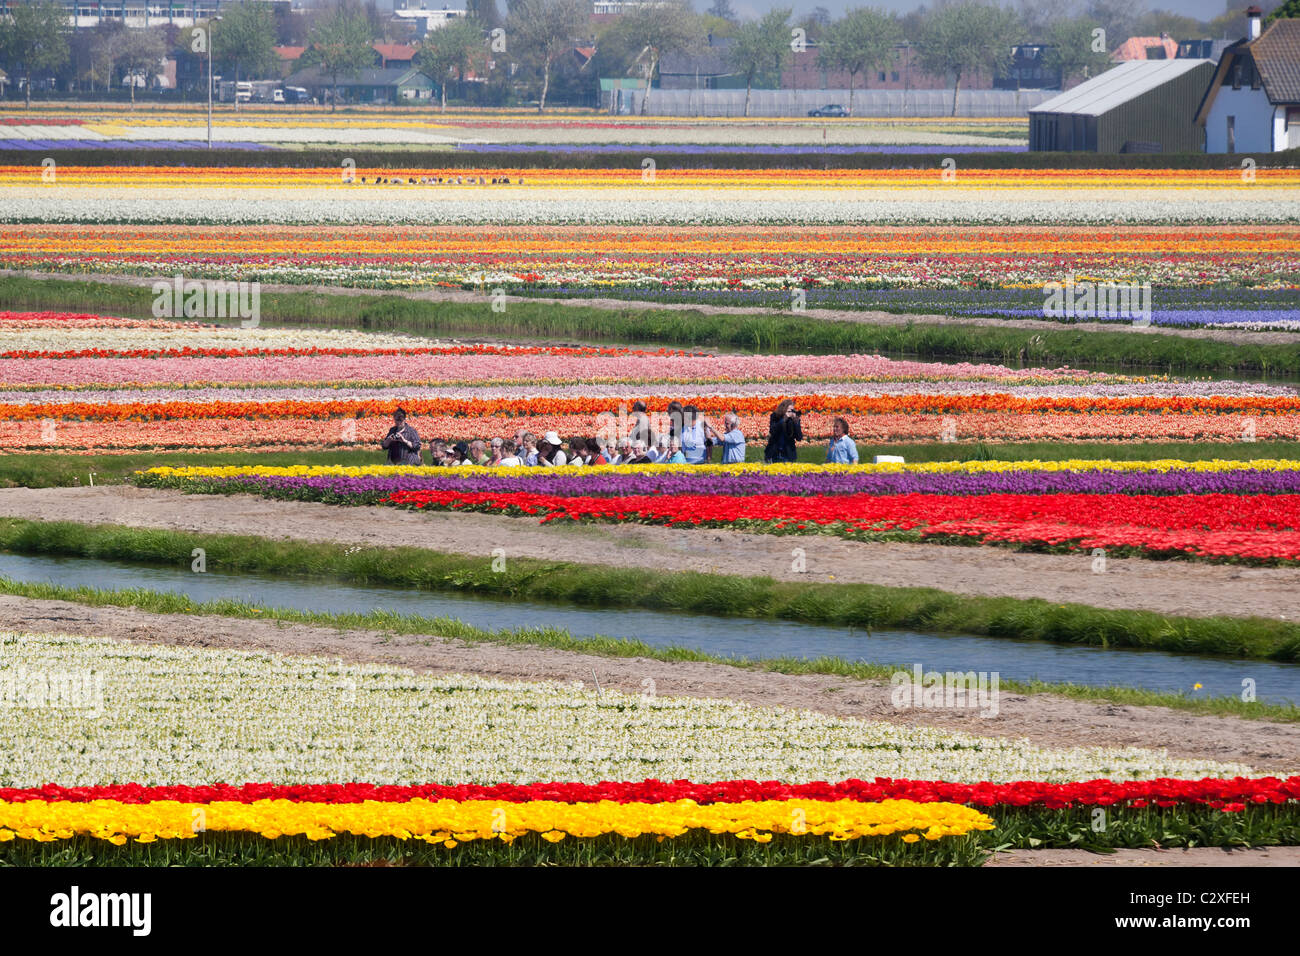 Keukenhof Flower Garden in Lisse, Holland. Visitors taking a trip through the flowering tulip fields by electric - Stock Image